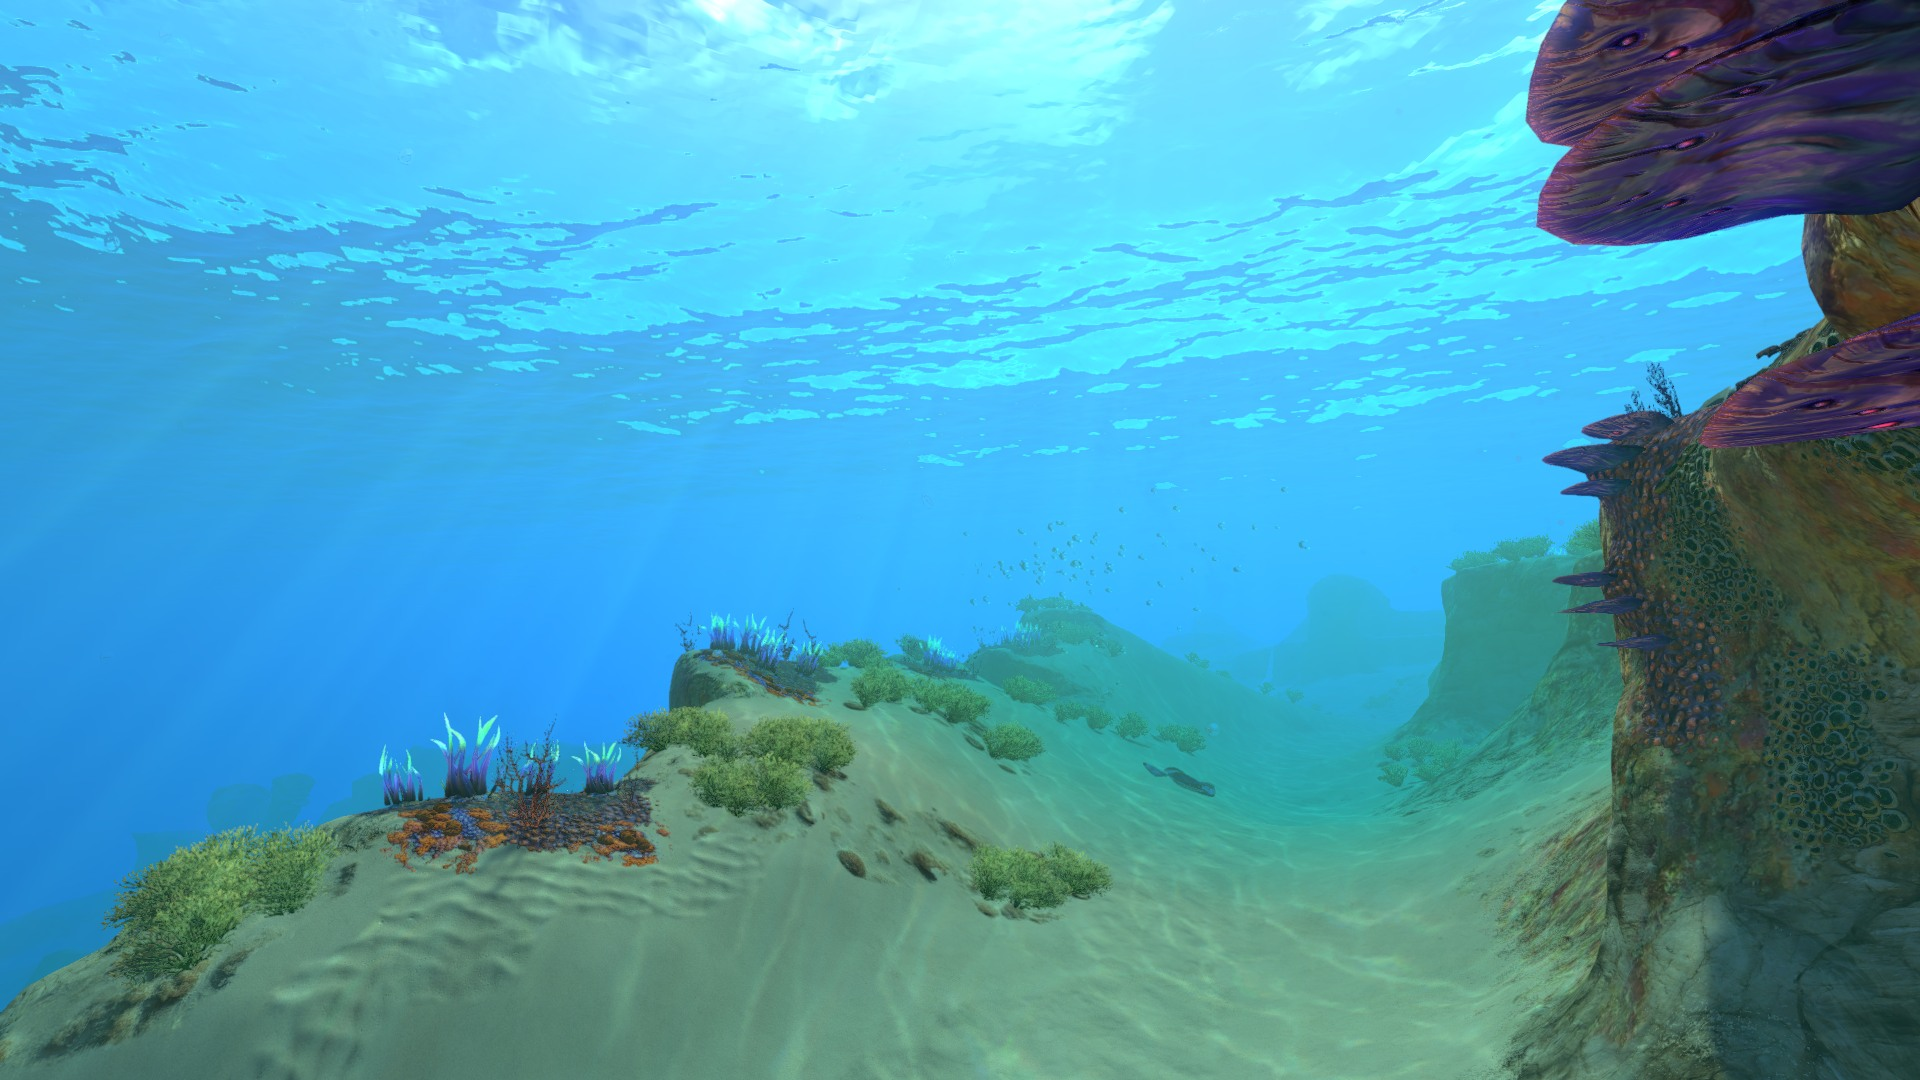 Subnautica Screenshots: FANDOM Powered By Wikia